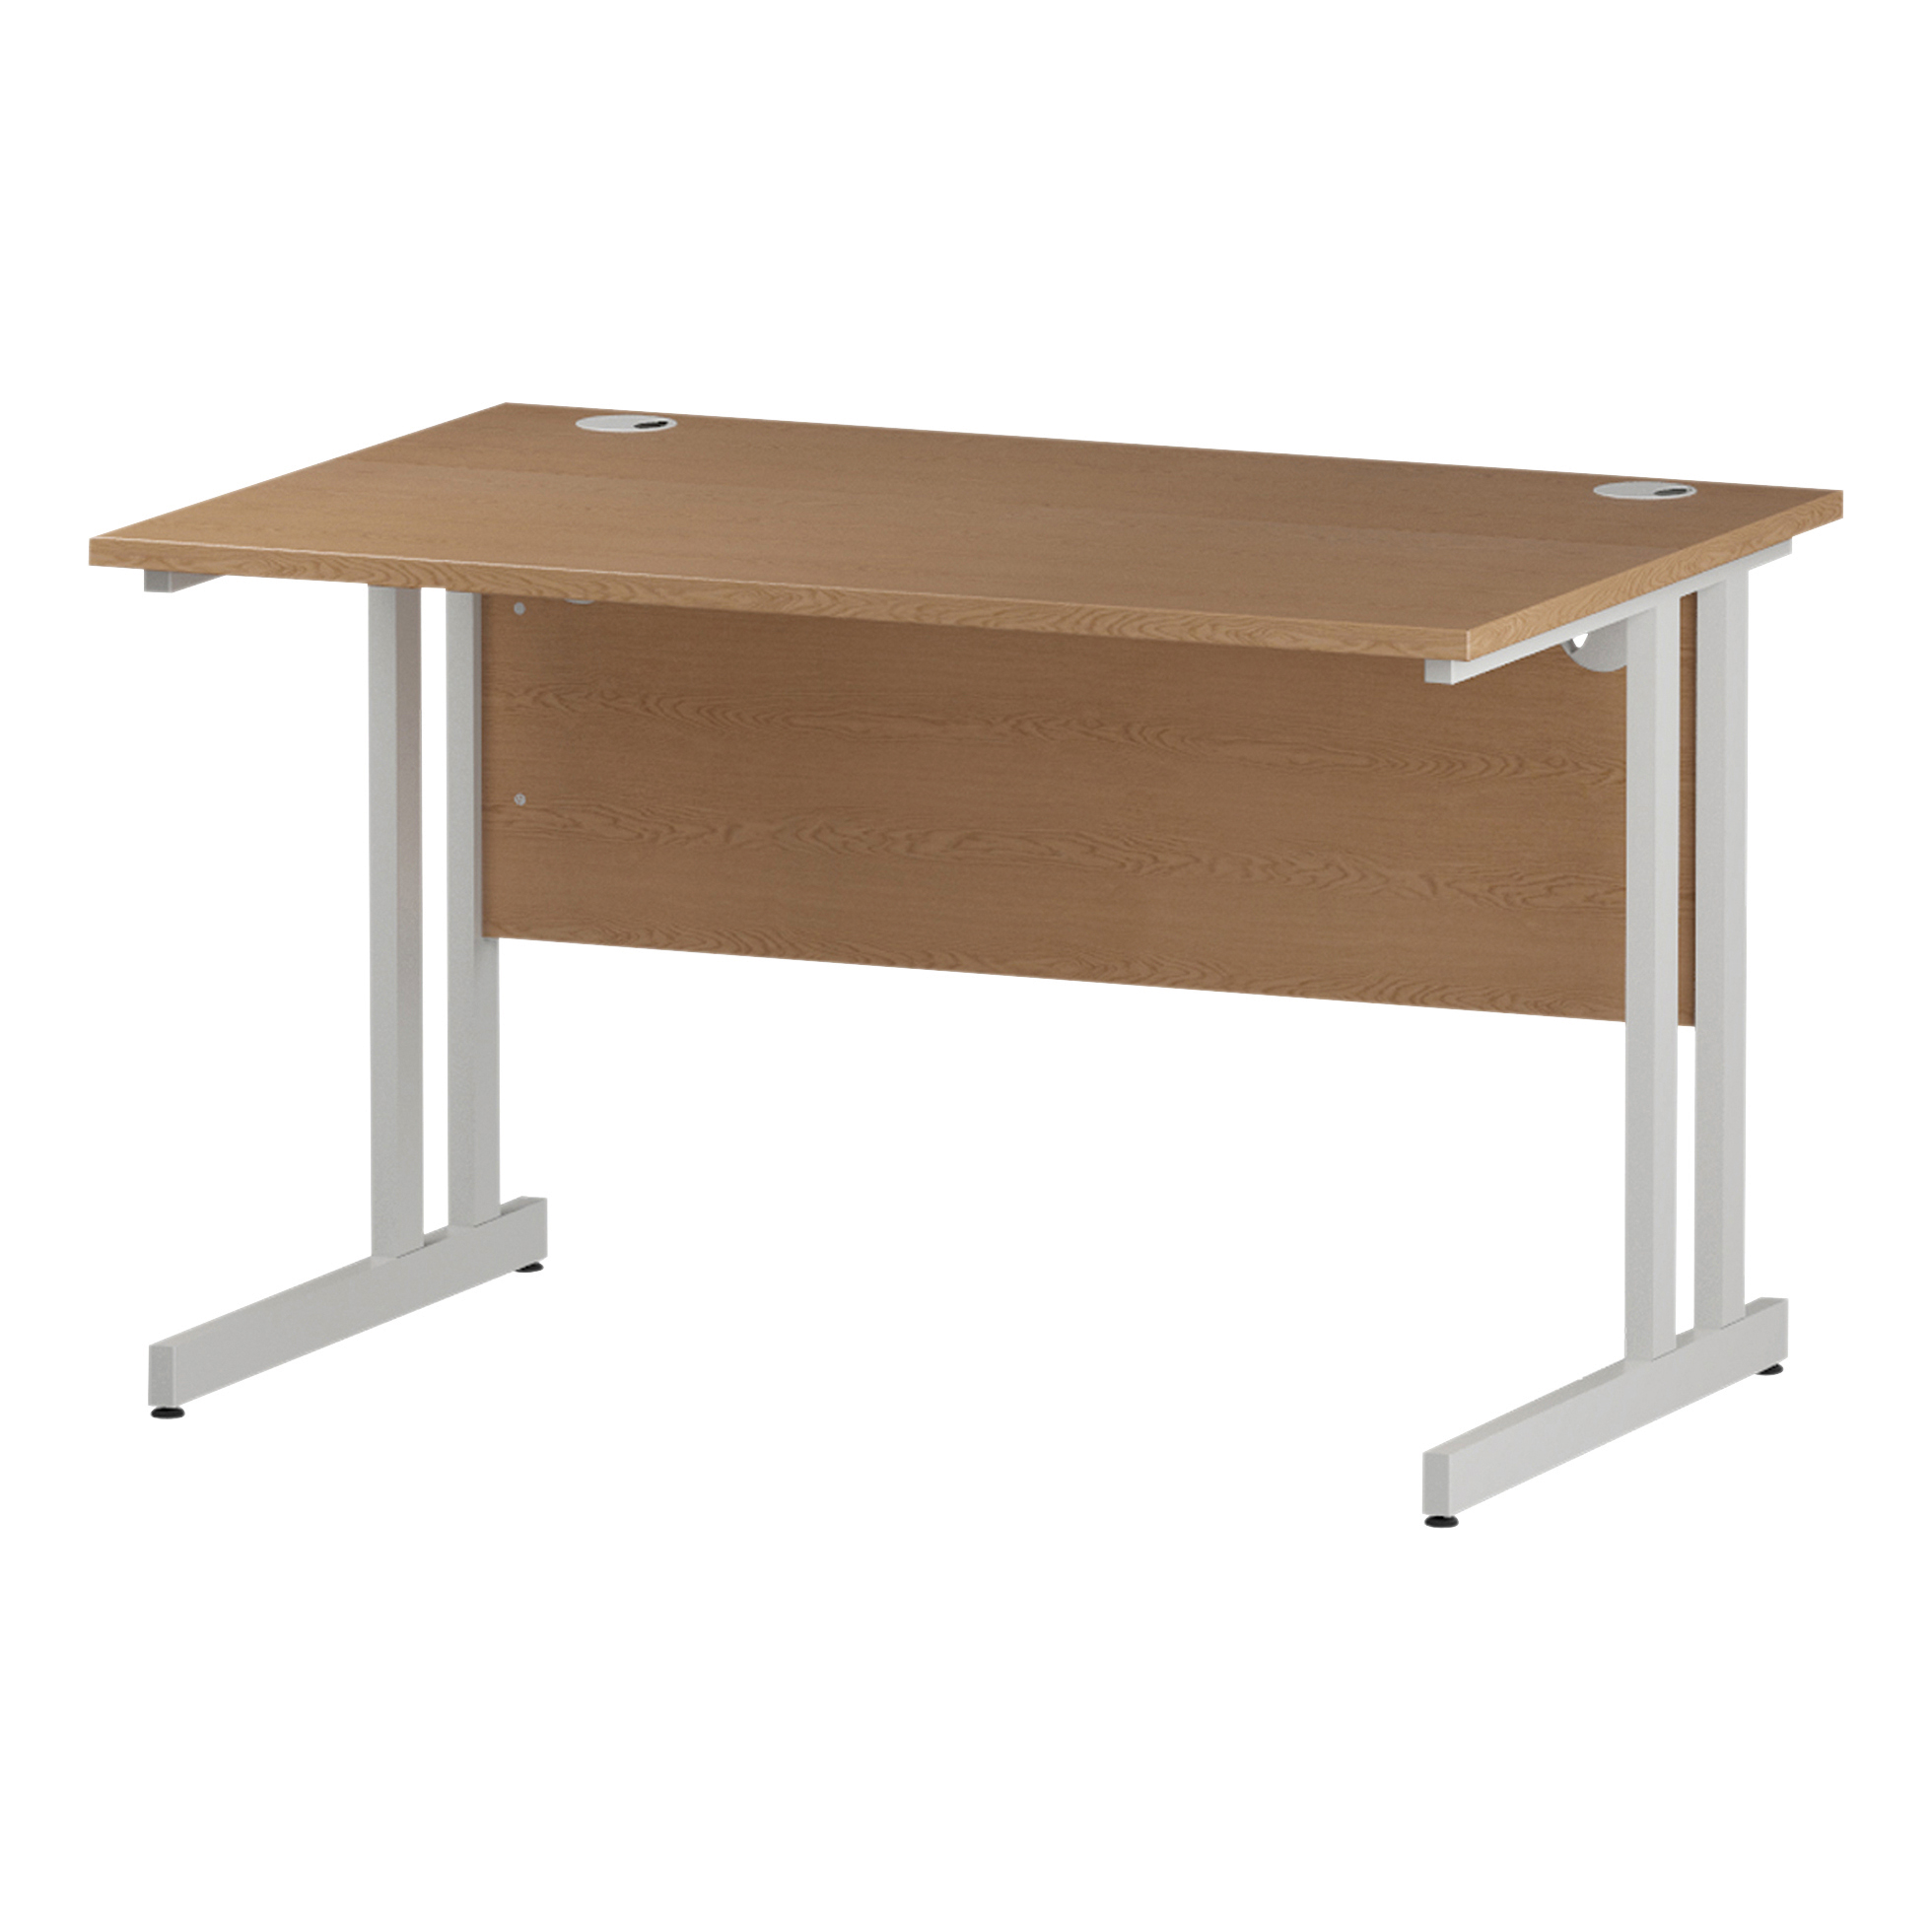 Trexus Rectangular Desk White Cantilever Leg 1200x800mm Oak Ref I002643